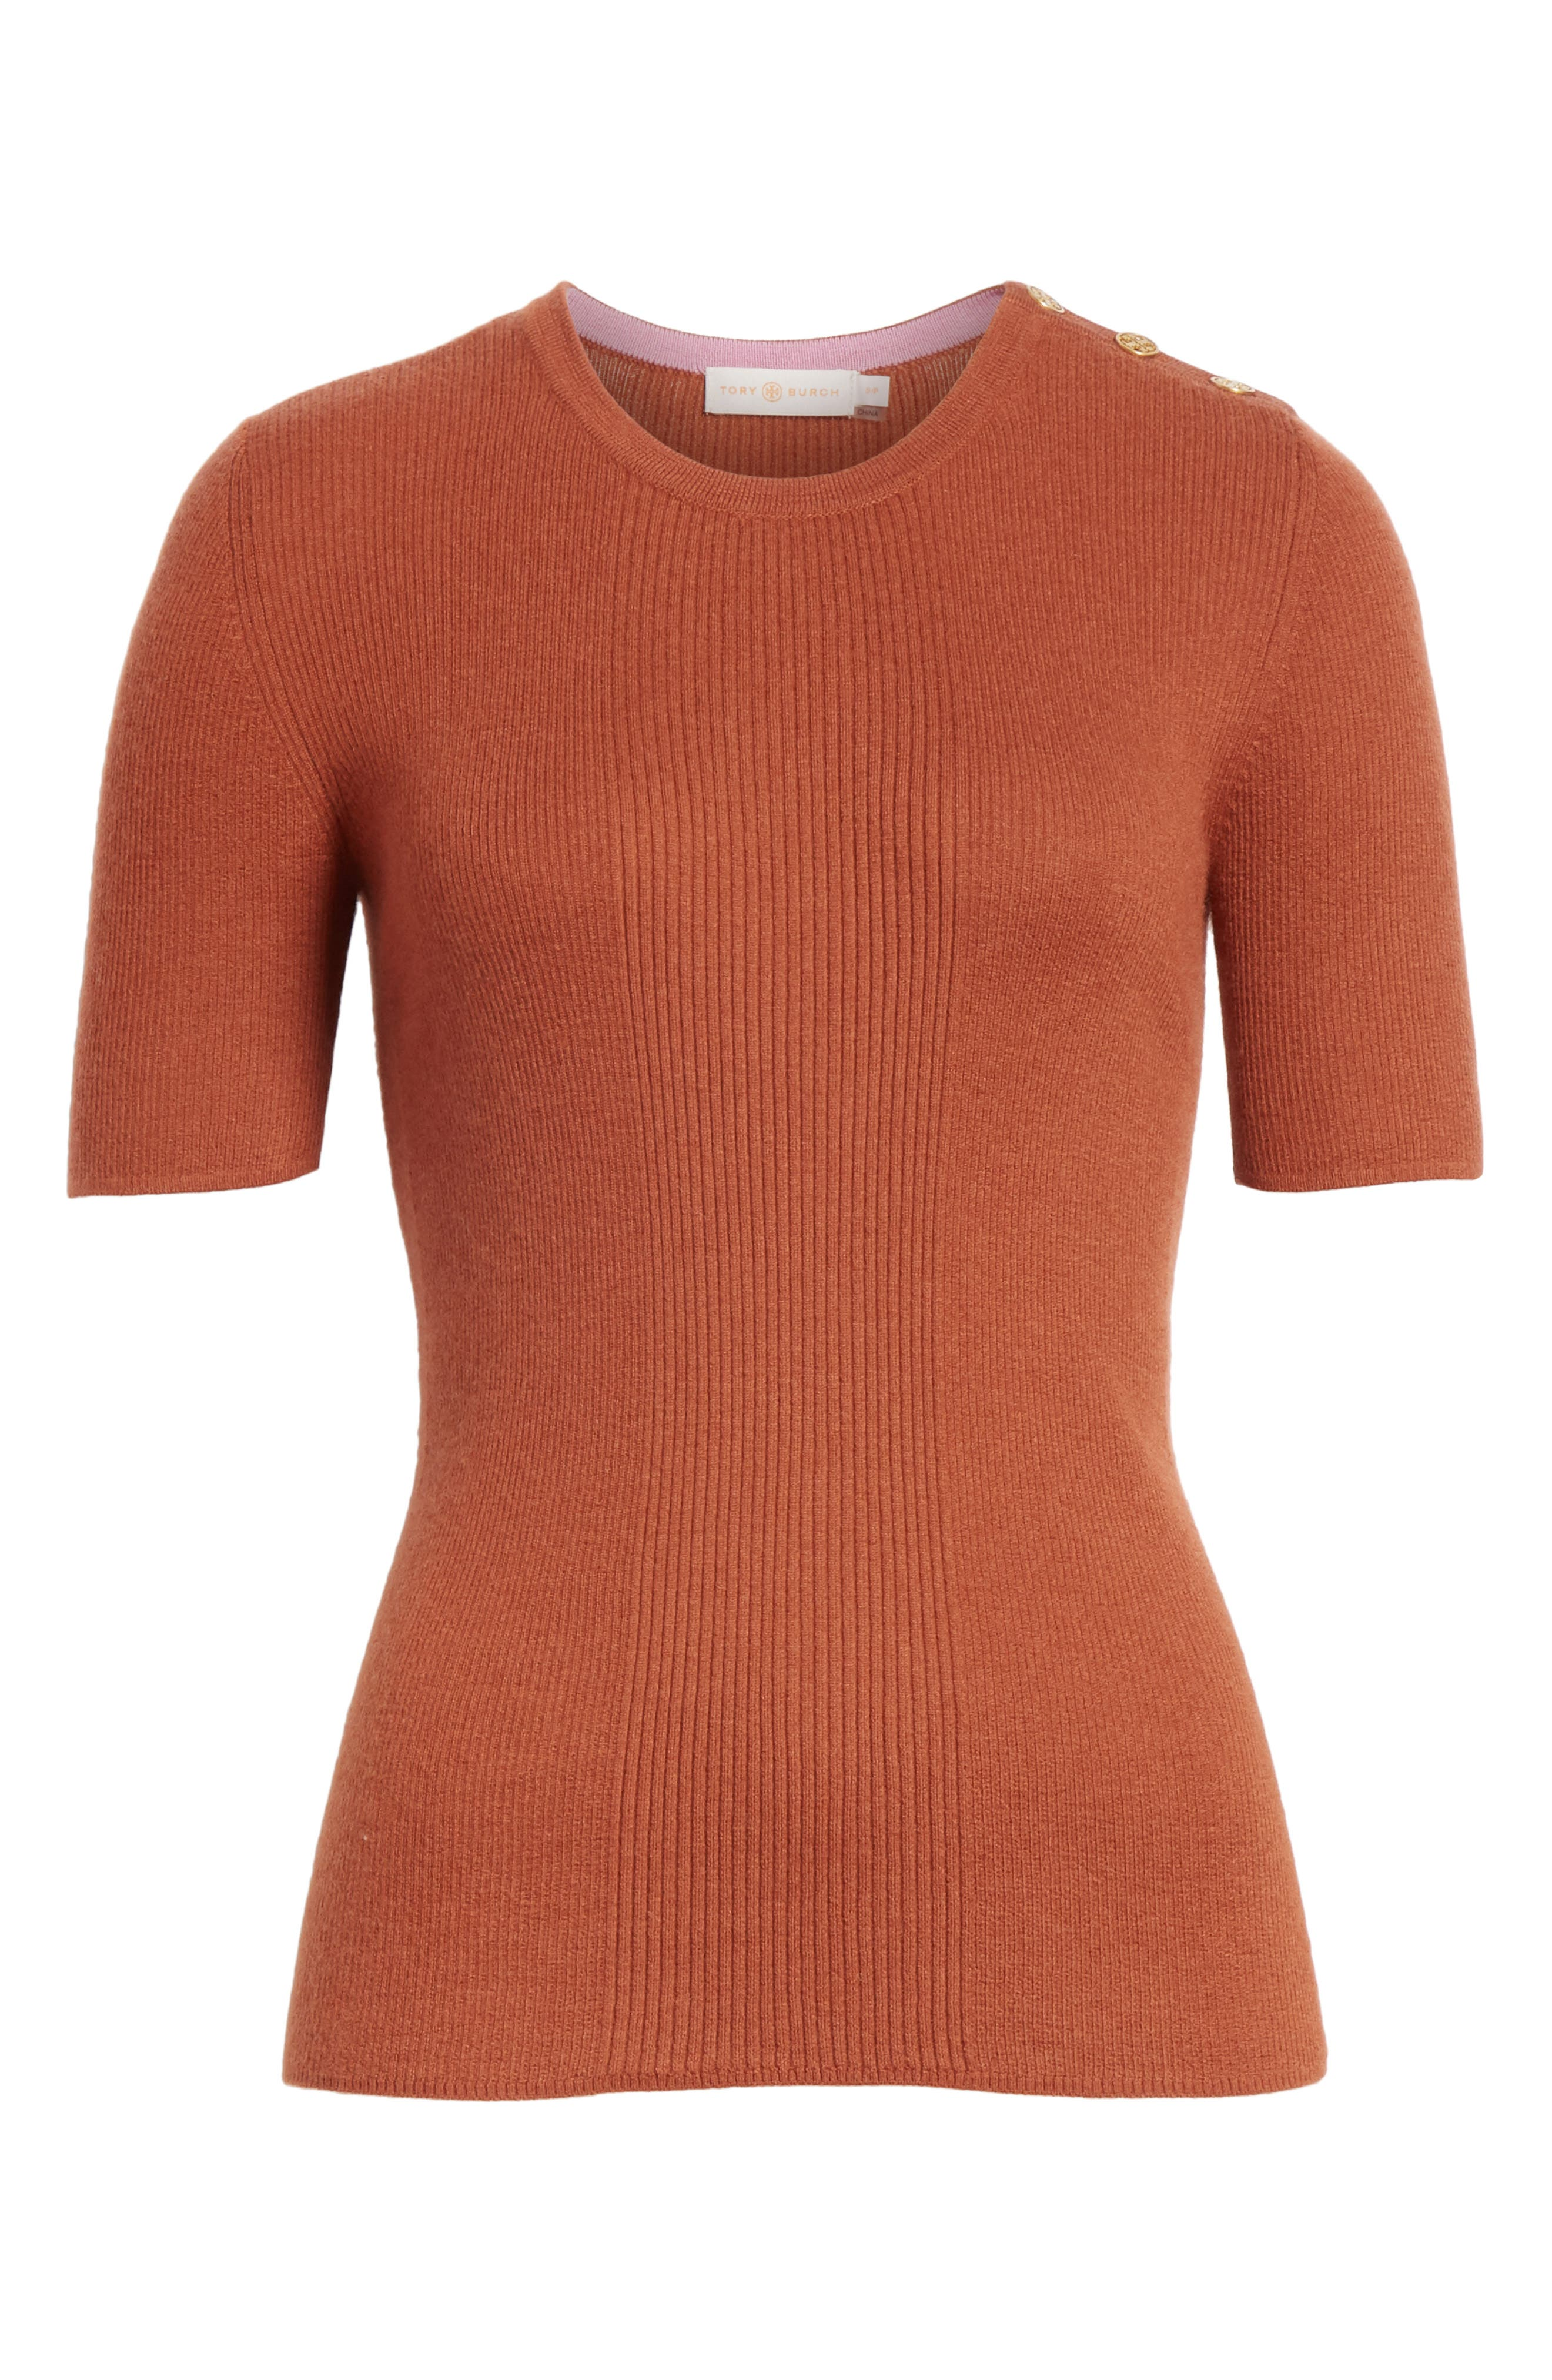 Taylor Ribbed Cashmere Sweater,                             Alternate thumbnail 6, color,                             DESERT SPICE